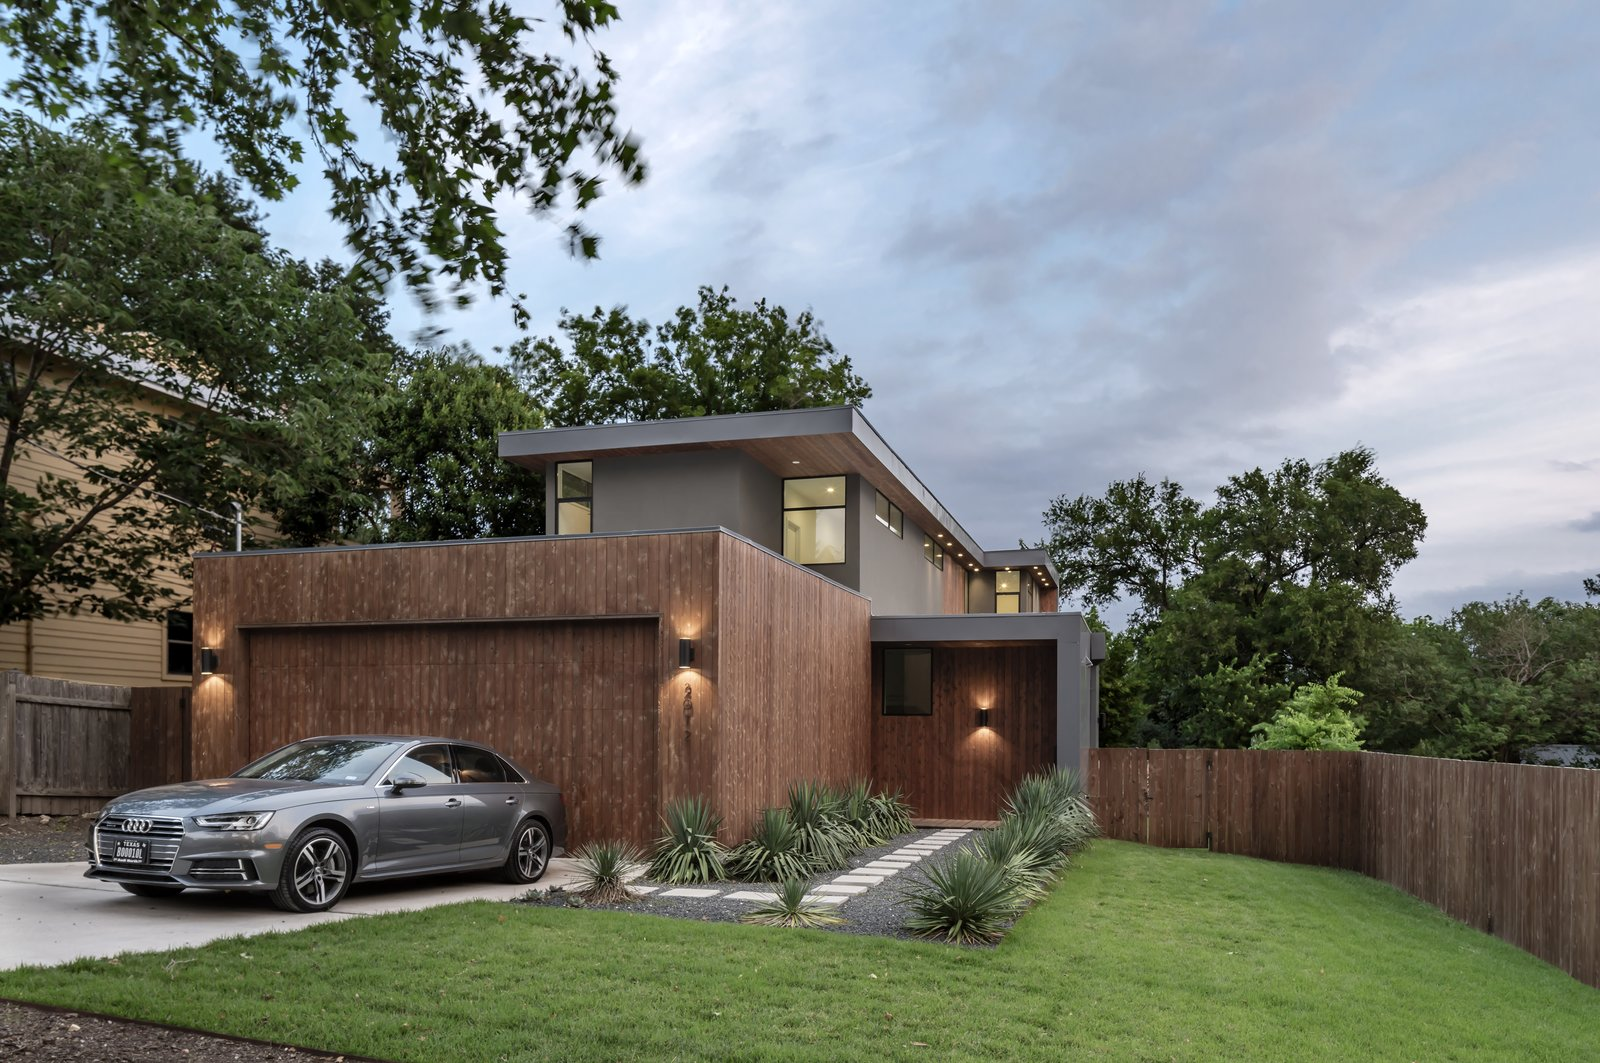 Exterior, Metal Roof Material, Wood Siding Material, Metal Siding Material, House Building Type, Flat RoofLine, and Stucco Siding Material Add/Subtract House by Matt Fajkus Architecture | Photo by Charles Davis Smith  Photos from Add/Subtract House